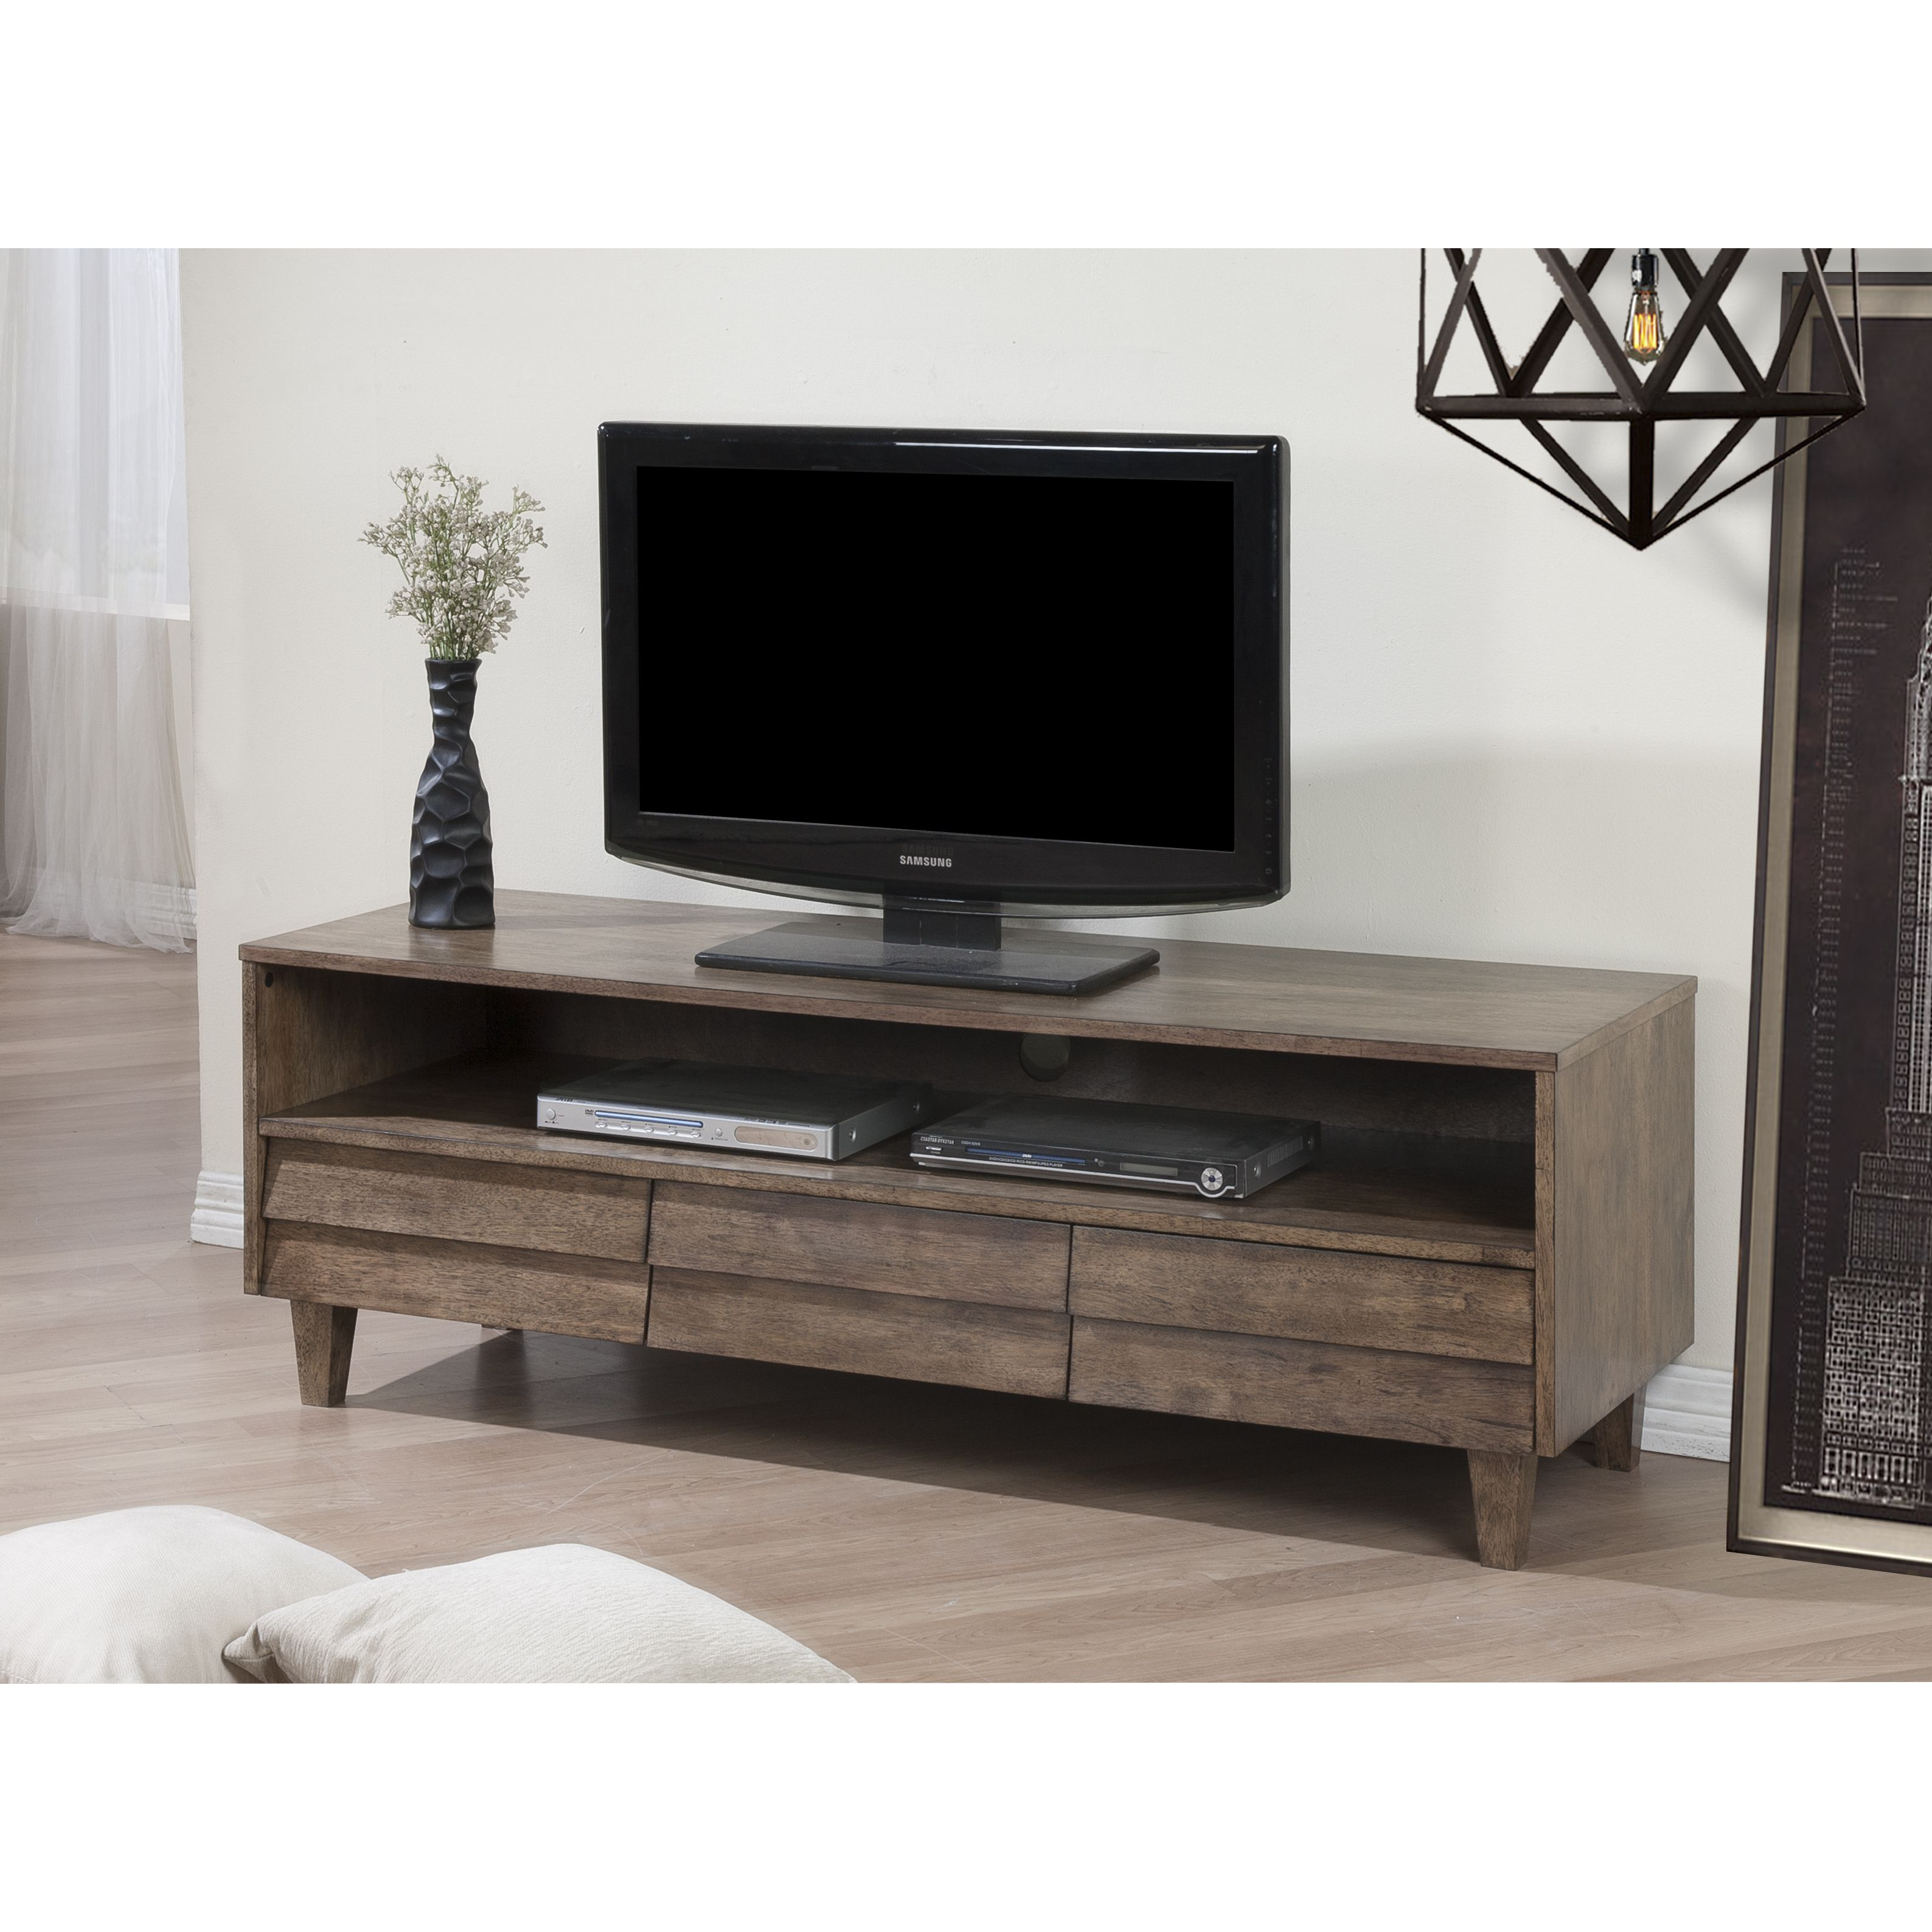 venetian 3 drawer entertainment center overstock com shopping the best deals on entertainment centers